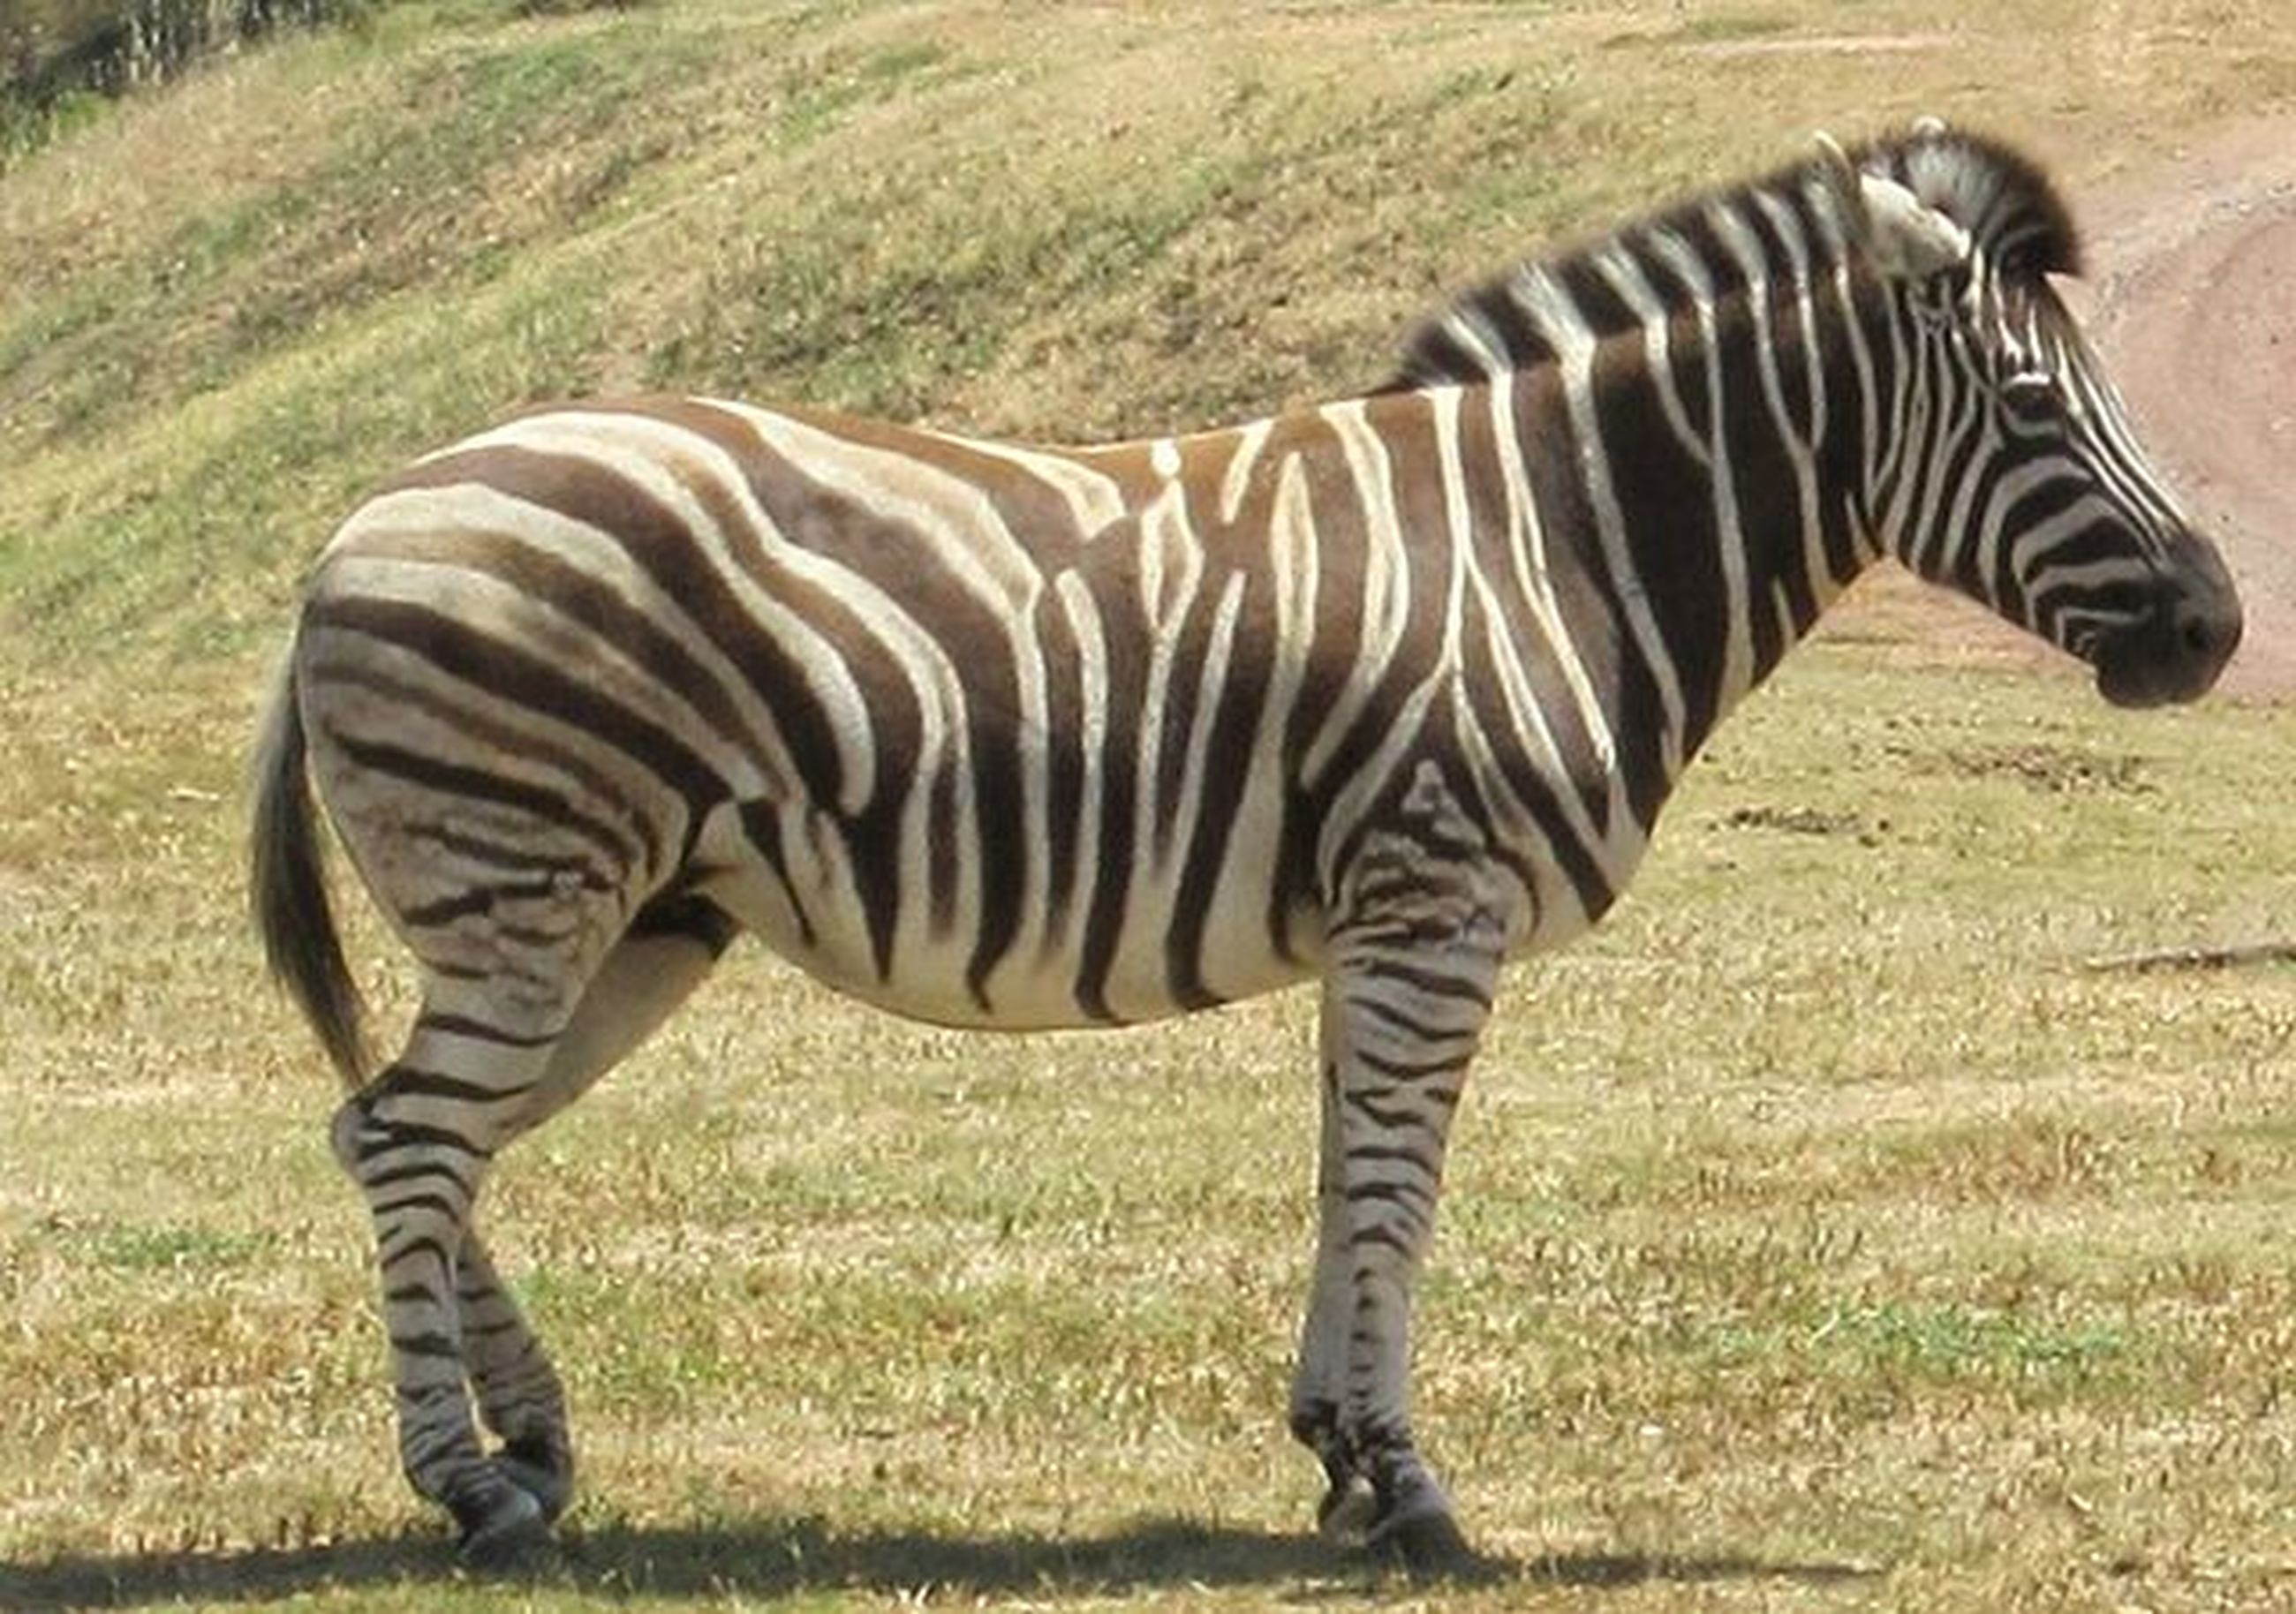 animal themes, zebra, field, grass, striped, mammal, standing, one animal, safari animals, animals in the wild, herbivorous, wildlife, side view, grazing, full length, grassy, animal markings, two animals, nature, landscape